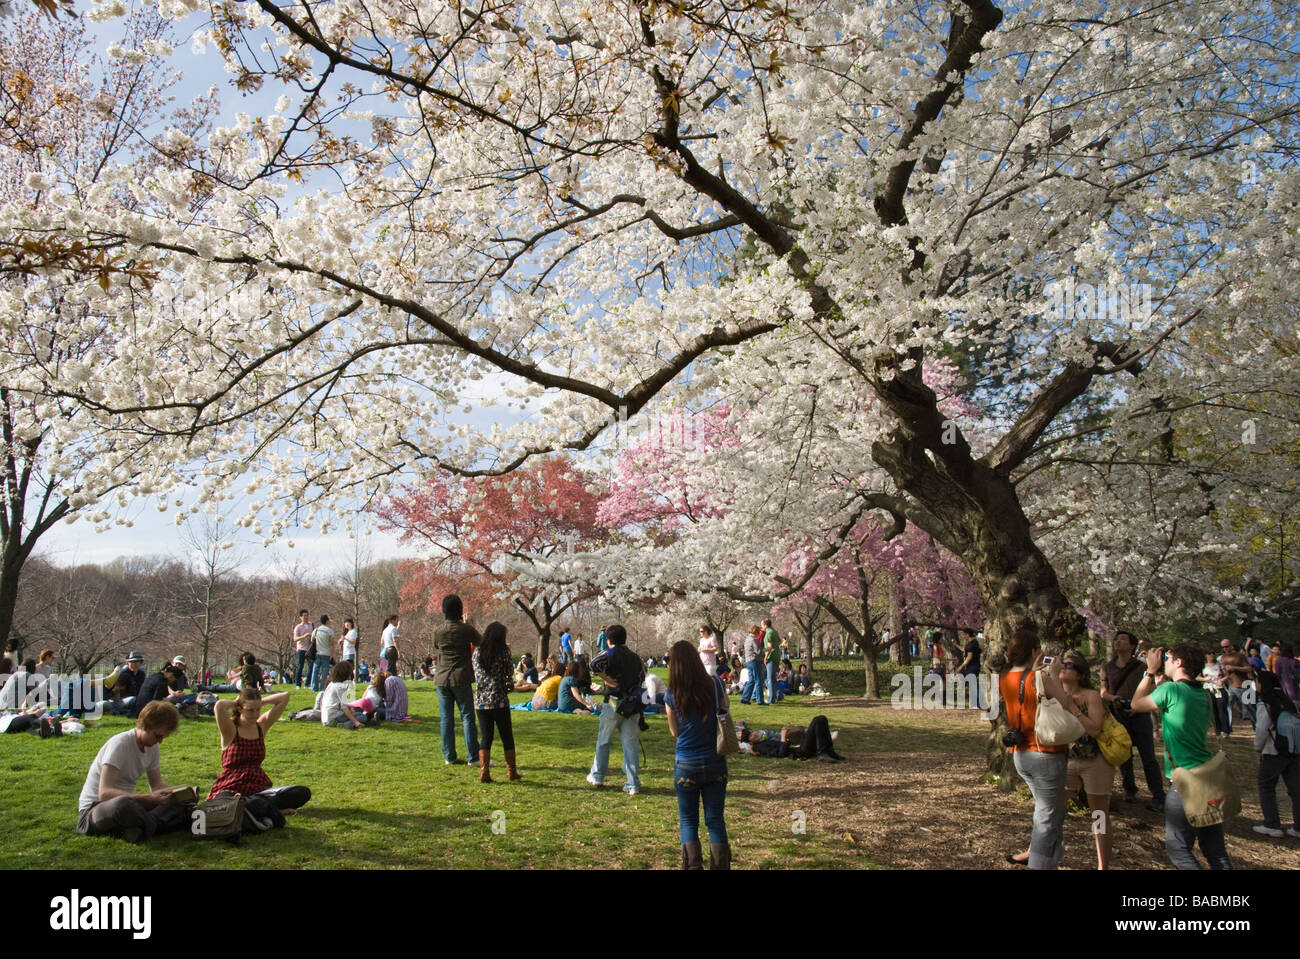 People Enjoying The Cherry Blossoms At The Brooklyn Botanic Garden On A  Beautiful Spring Day